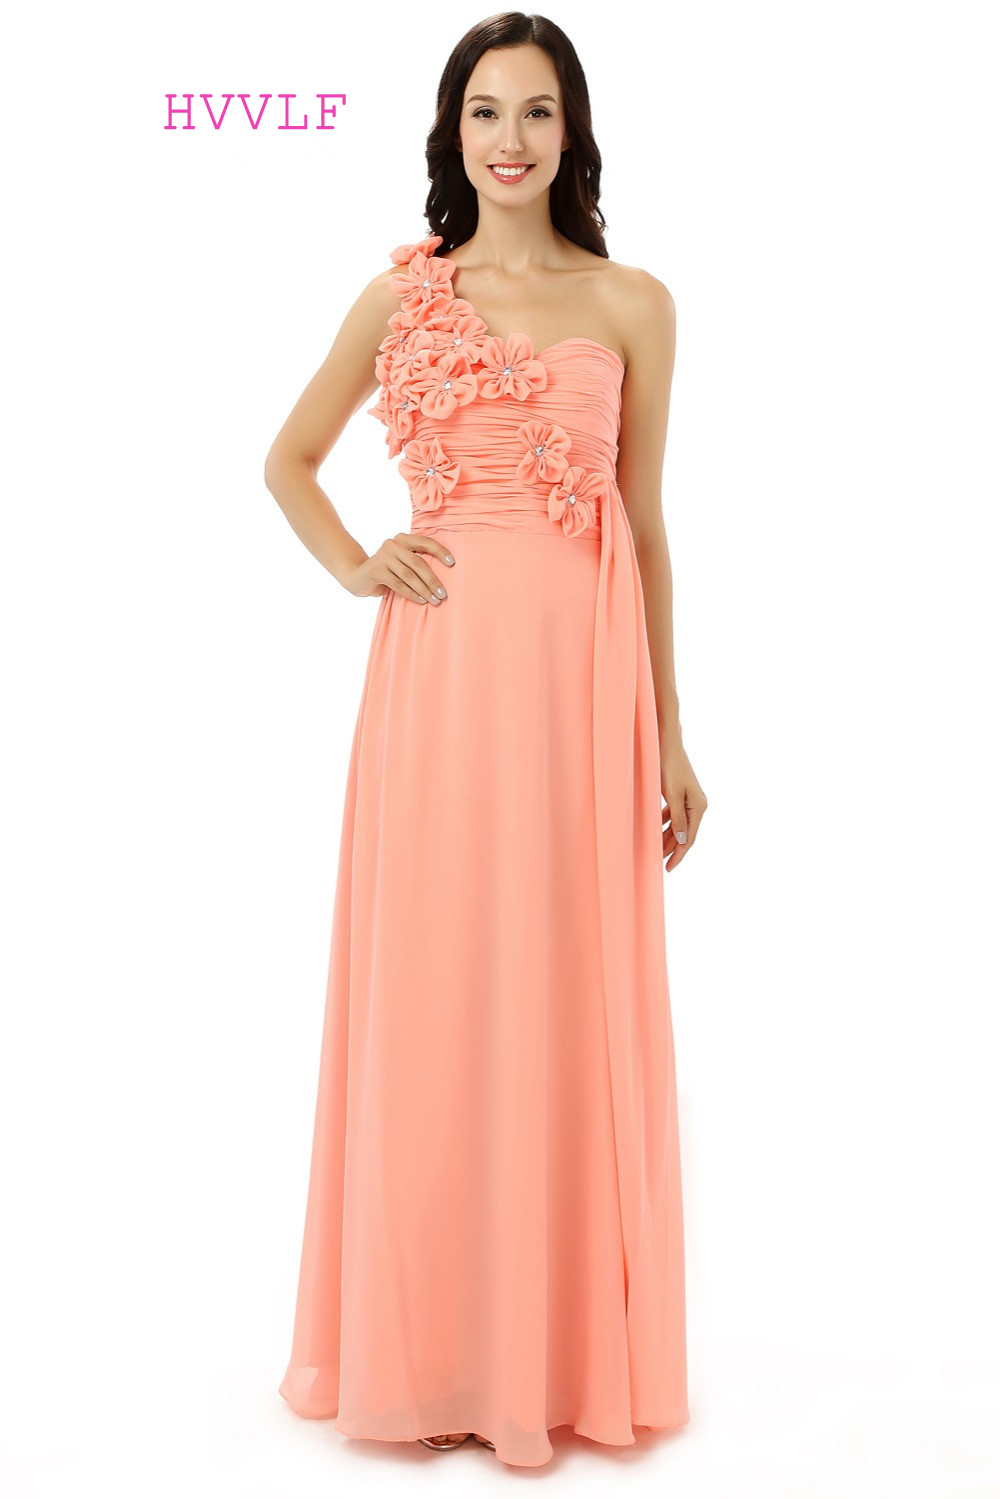 Buy cheap strapless floor length chiffon coral bridesmaid dress - Coral 2017 Cheap Bridesmaid Dresses Under 50 A Line One Shoulder Floor Length Chiffon